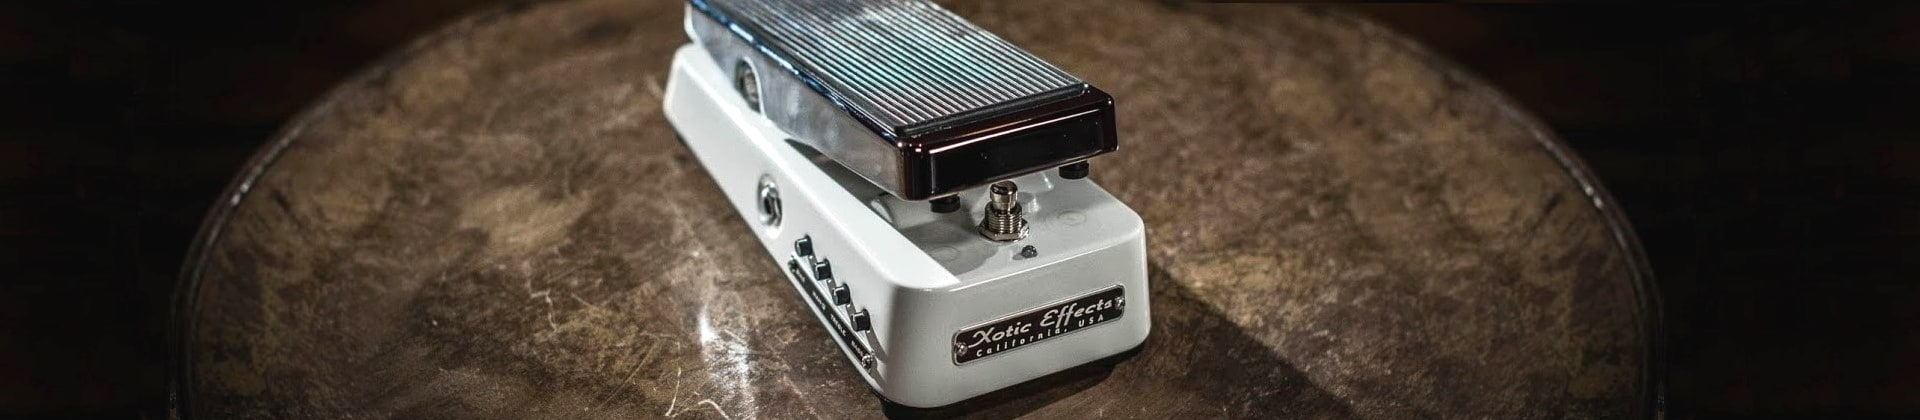 Best Wah Pedals Reviewed in Detail [Feb. 2020]